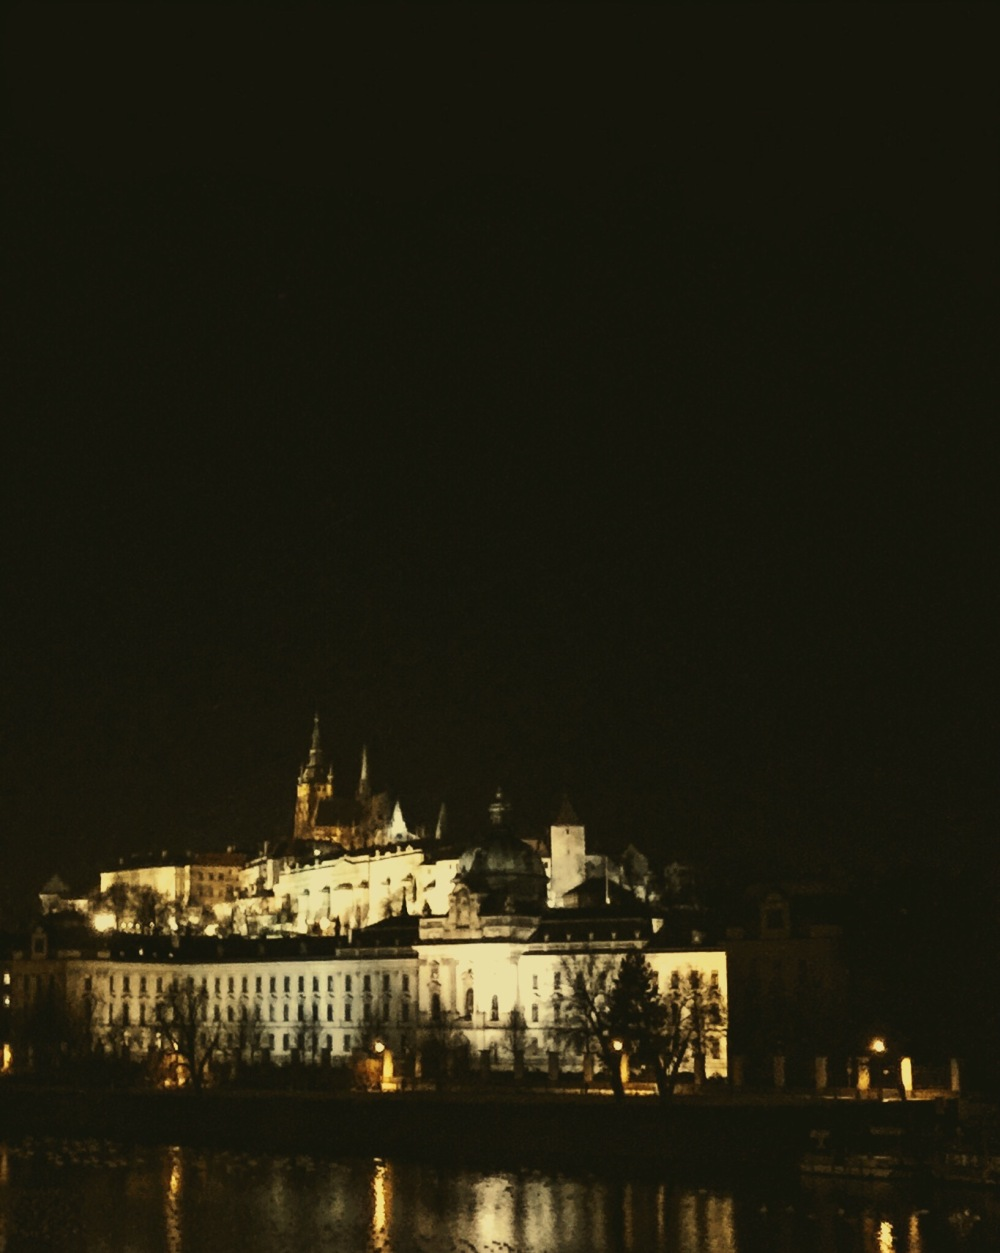 Prague Castle from across the river